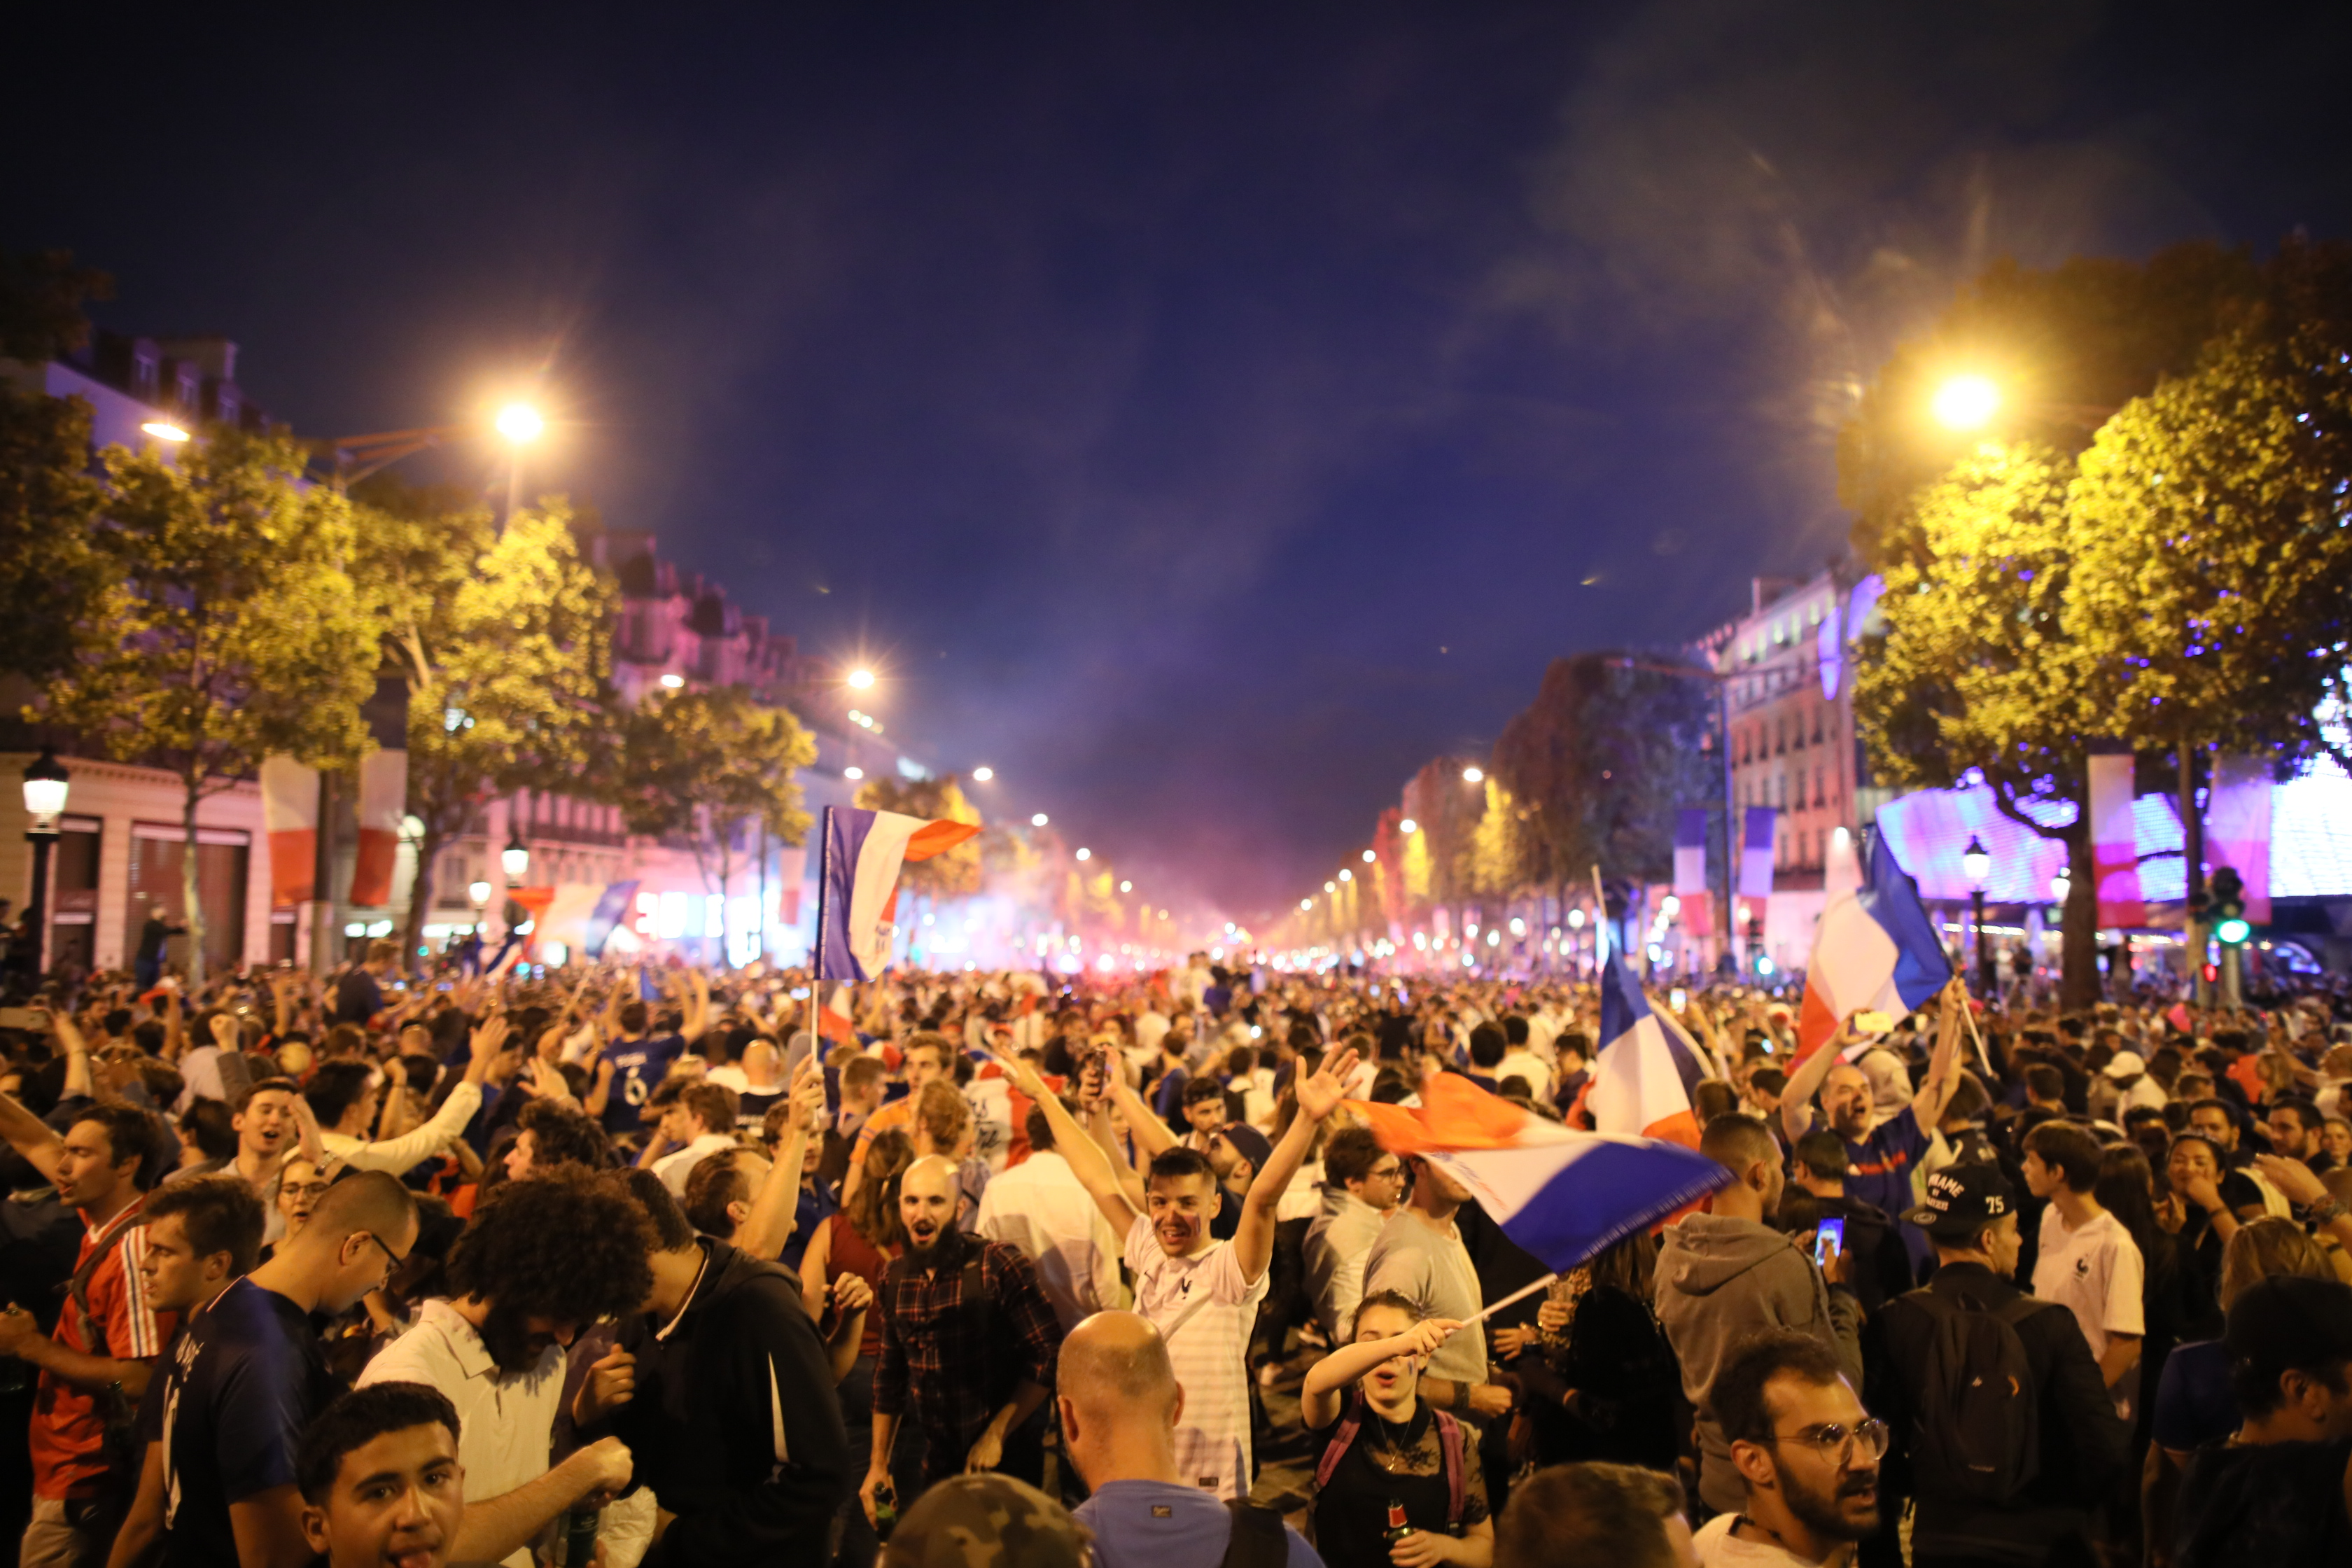 FIFAWorld Cup 2018, final round, semi-finals: France vs. Belgium. Fans celebrate on the Champs Elysee after the victory of the French team in the semi-final of the FIFA World Cup. Photo: Leo Novel/dpa (Photo by Leo Novel/picture alliance via Getty Images)